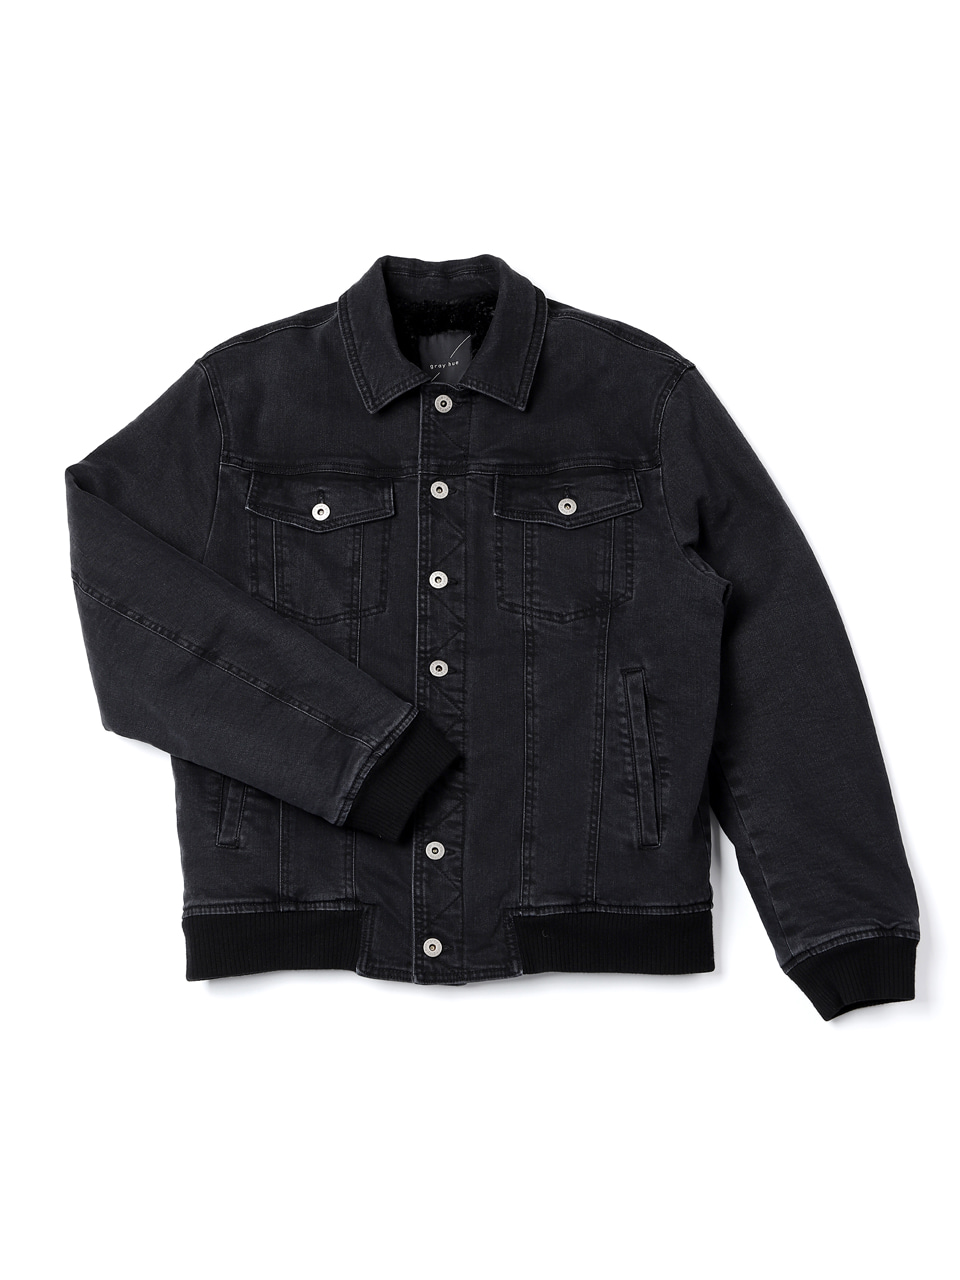 그레이휴Heavy Denim Jacket, Black